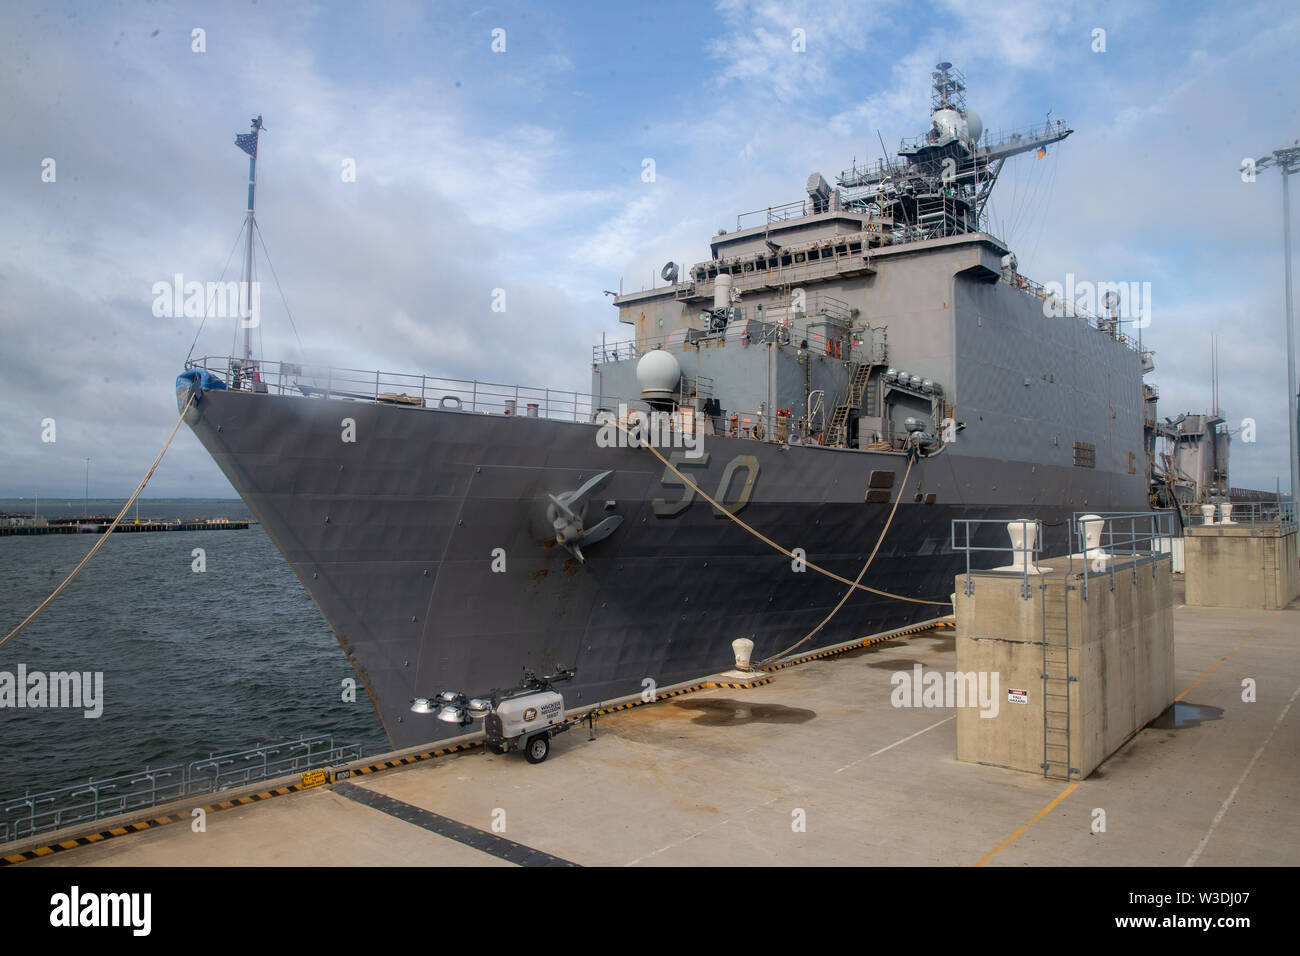 USS Carter Hall (LSD 50) Harpers Ferry Class docks at a pier on Naval Air Station Norfolk, Virginia, July 12, 2019. U.S. Marines with II Marine Expeditionary Force rehearsed a loading exercise with the U.S. Navy to rapidly form, embark and deploy maritime Defense Support for Civil Authorities operations in support of U.S. Northern Command. (U.S. Marine Corps photo by Lance Cpl. Adaezia Chavez) - Stock Image